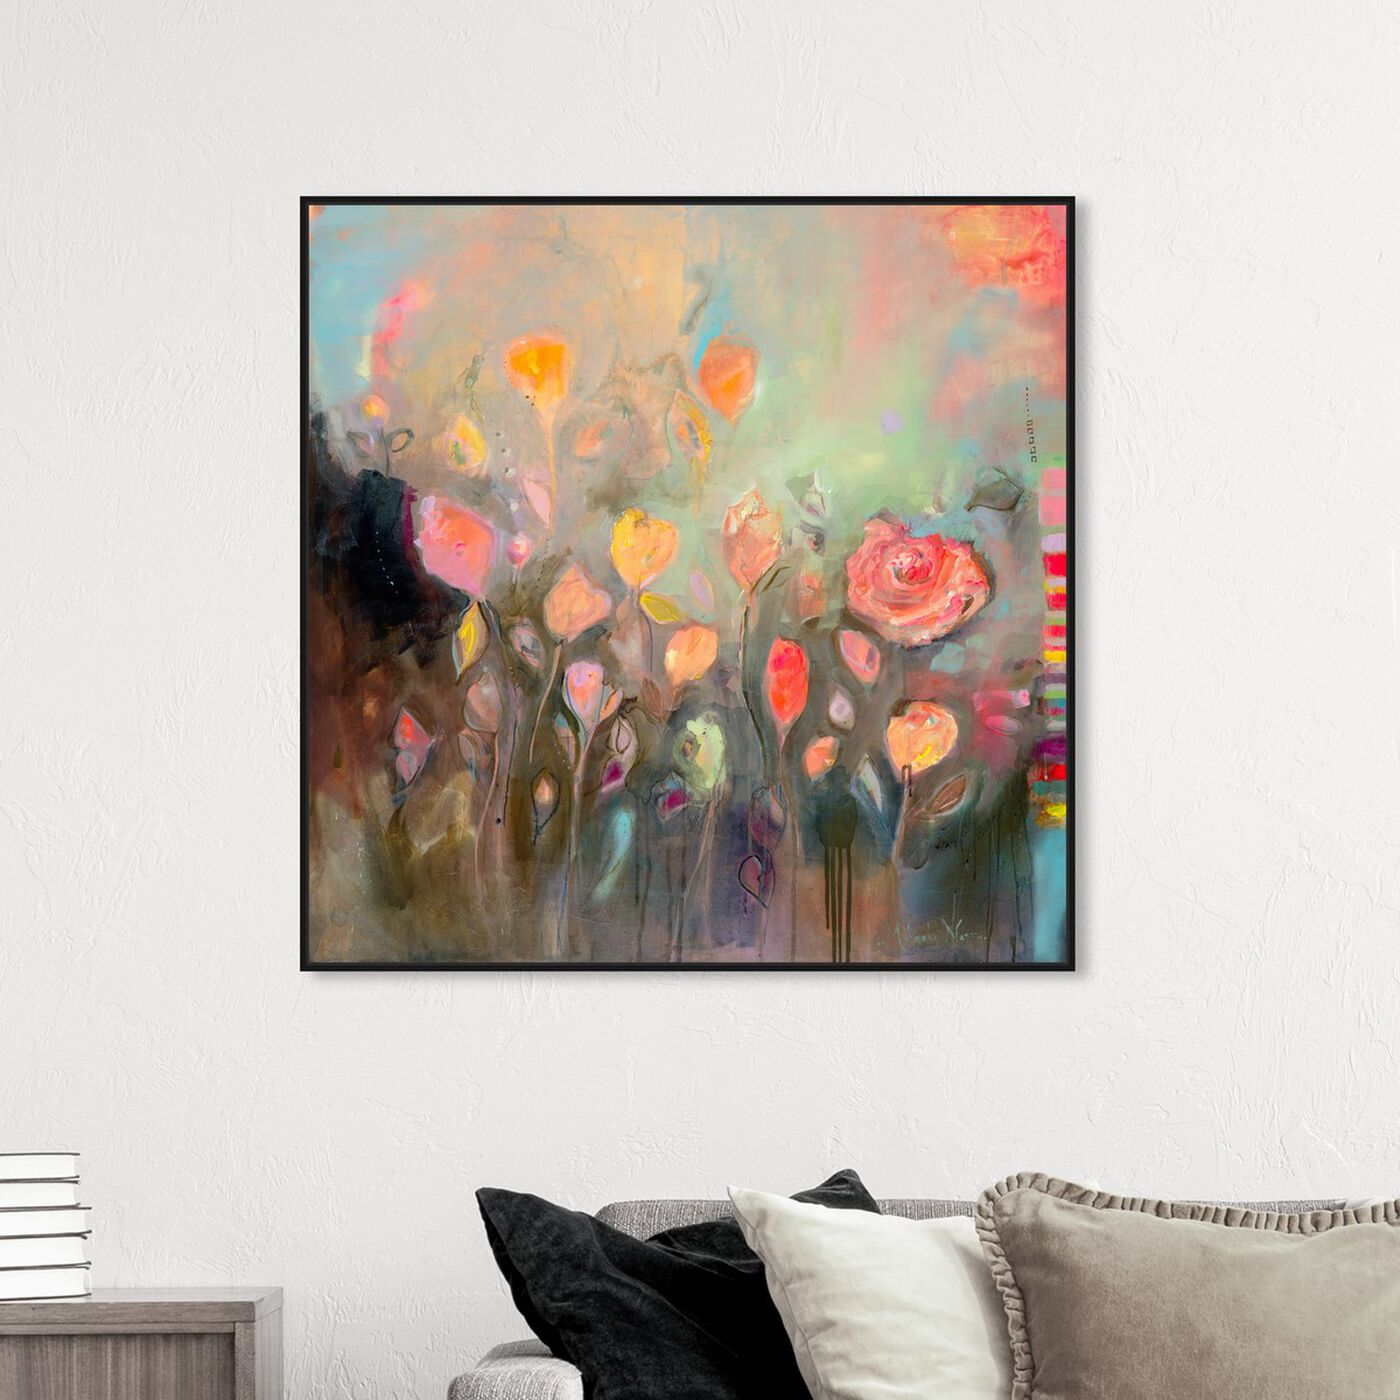 Hanging view of Eternal State of Mind by Michaela Nessim Canvas Art featuring abstract and paint art.